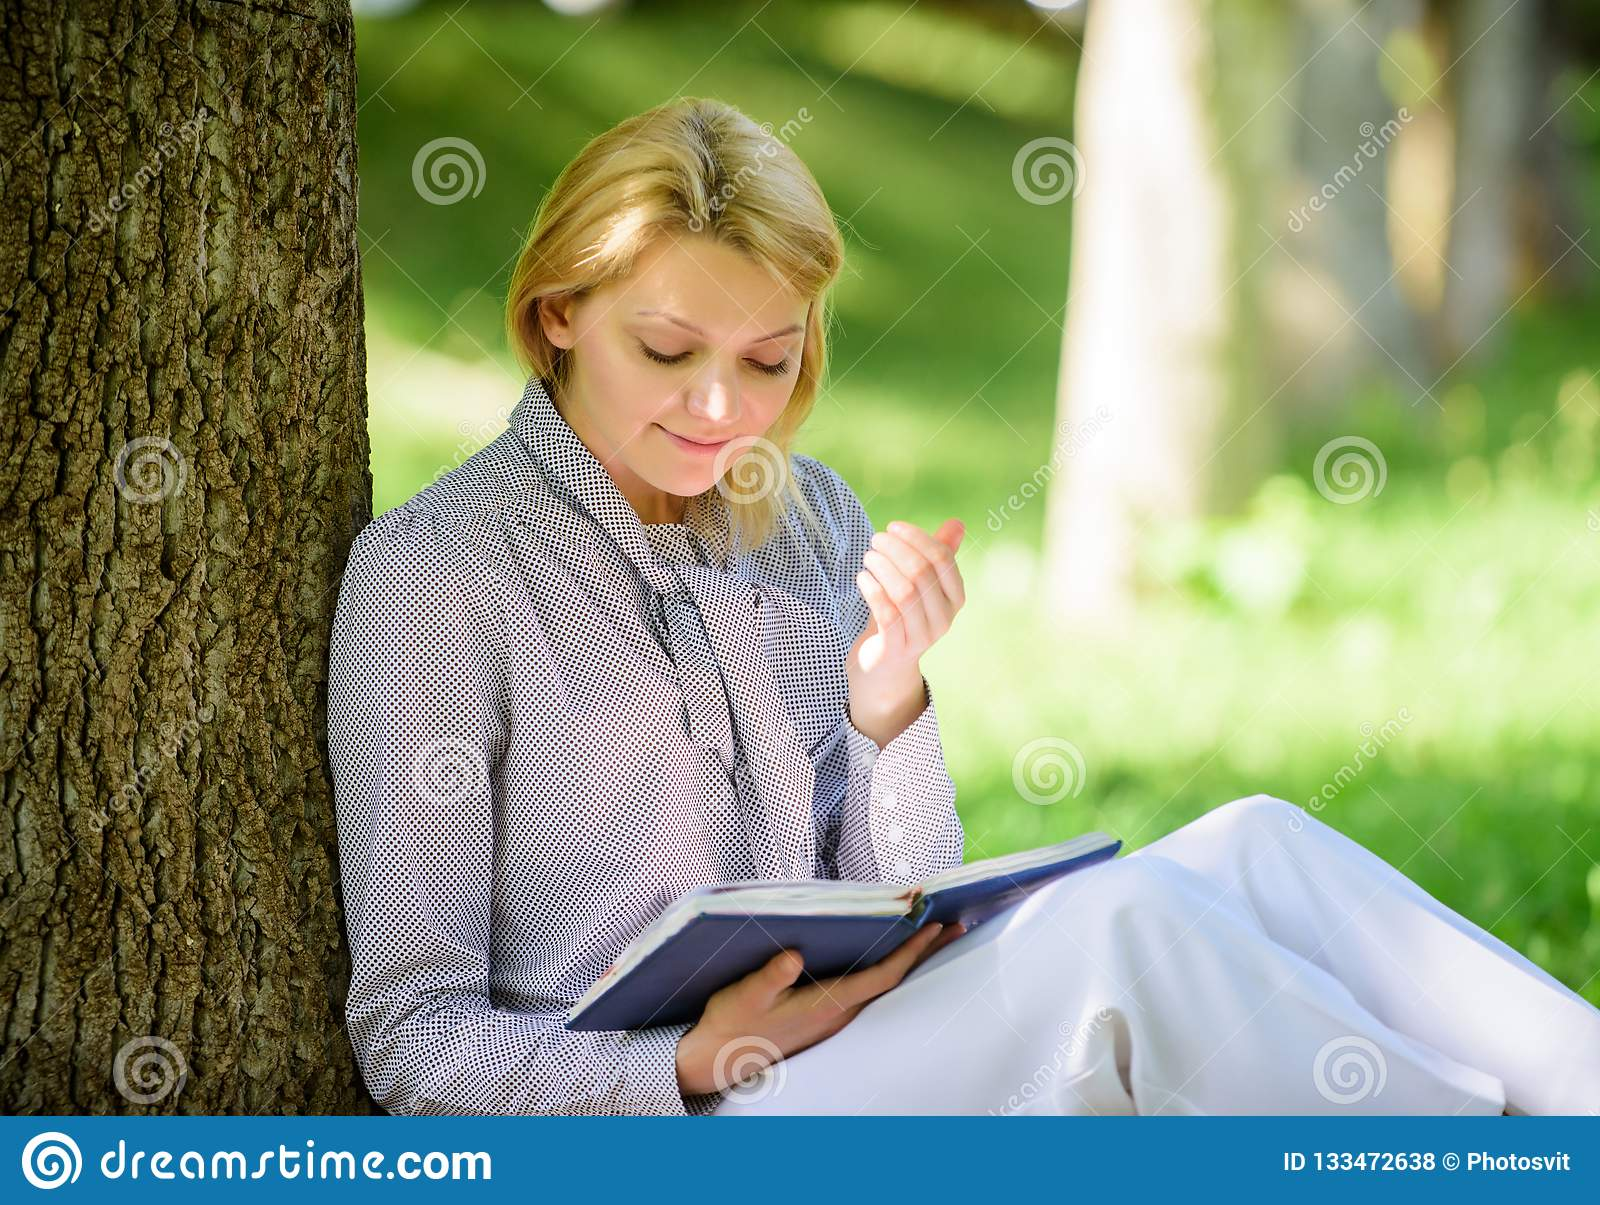 Relax leisure an hobby concept. Best self help books for women. Books every girl should read. Girl concentrated sit park